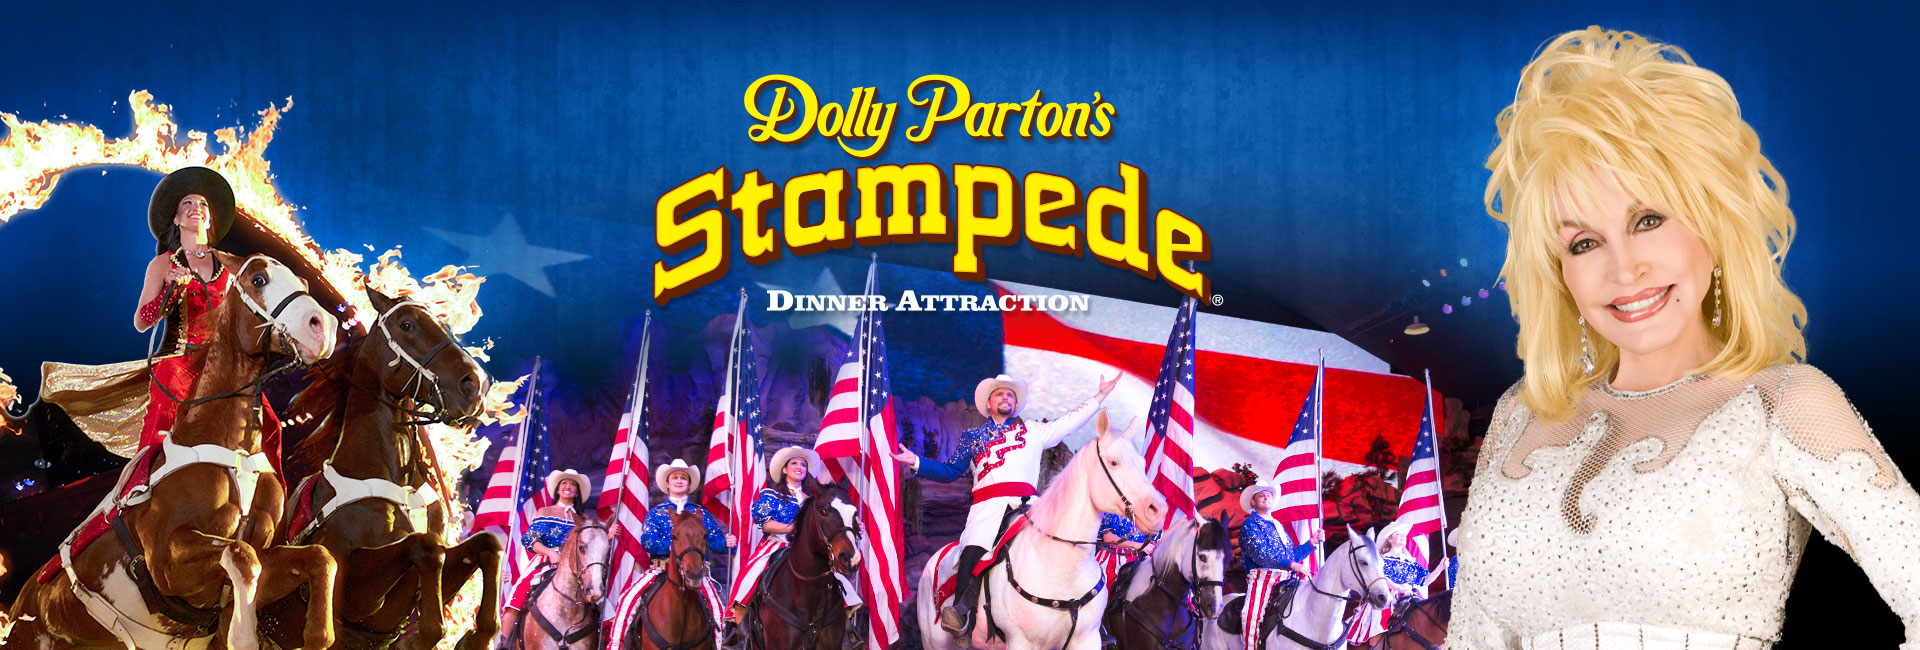 dolly parton dixie stampede dinner show gatlinburg tn